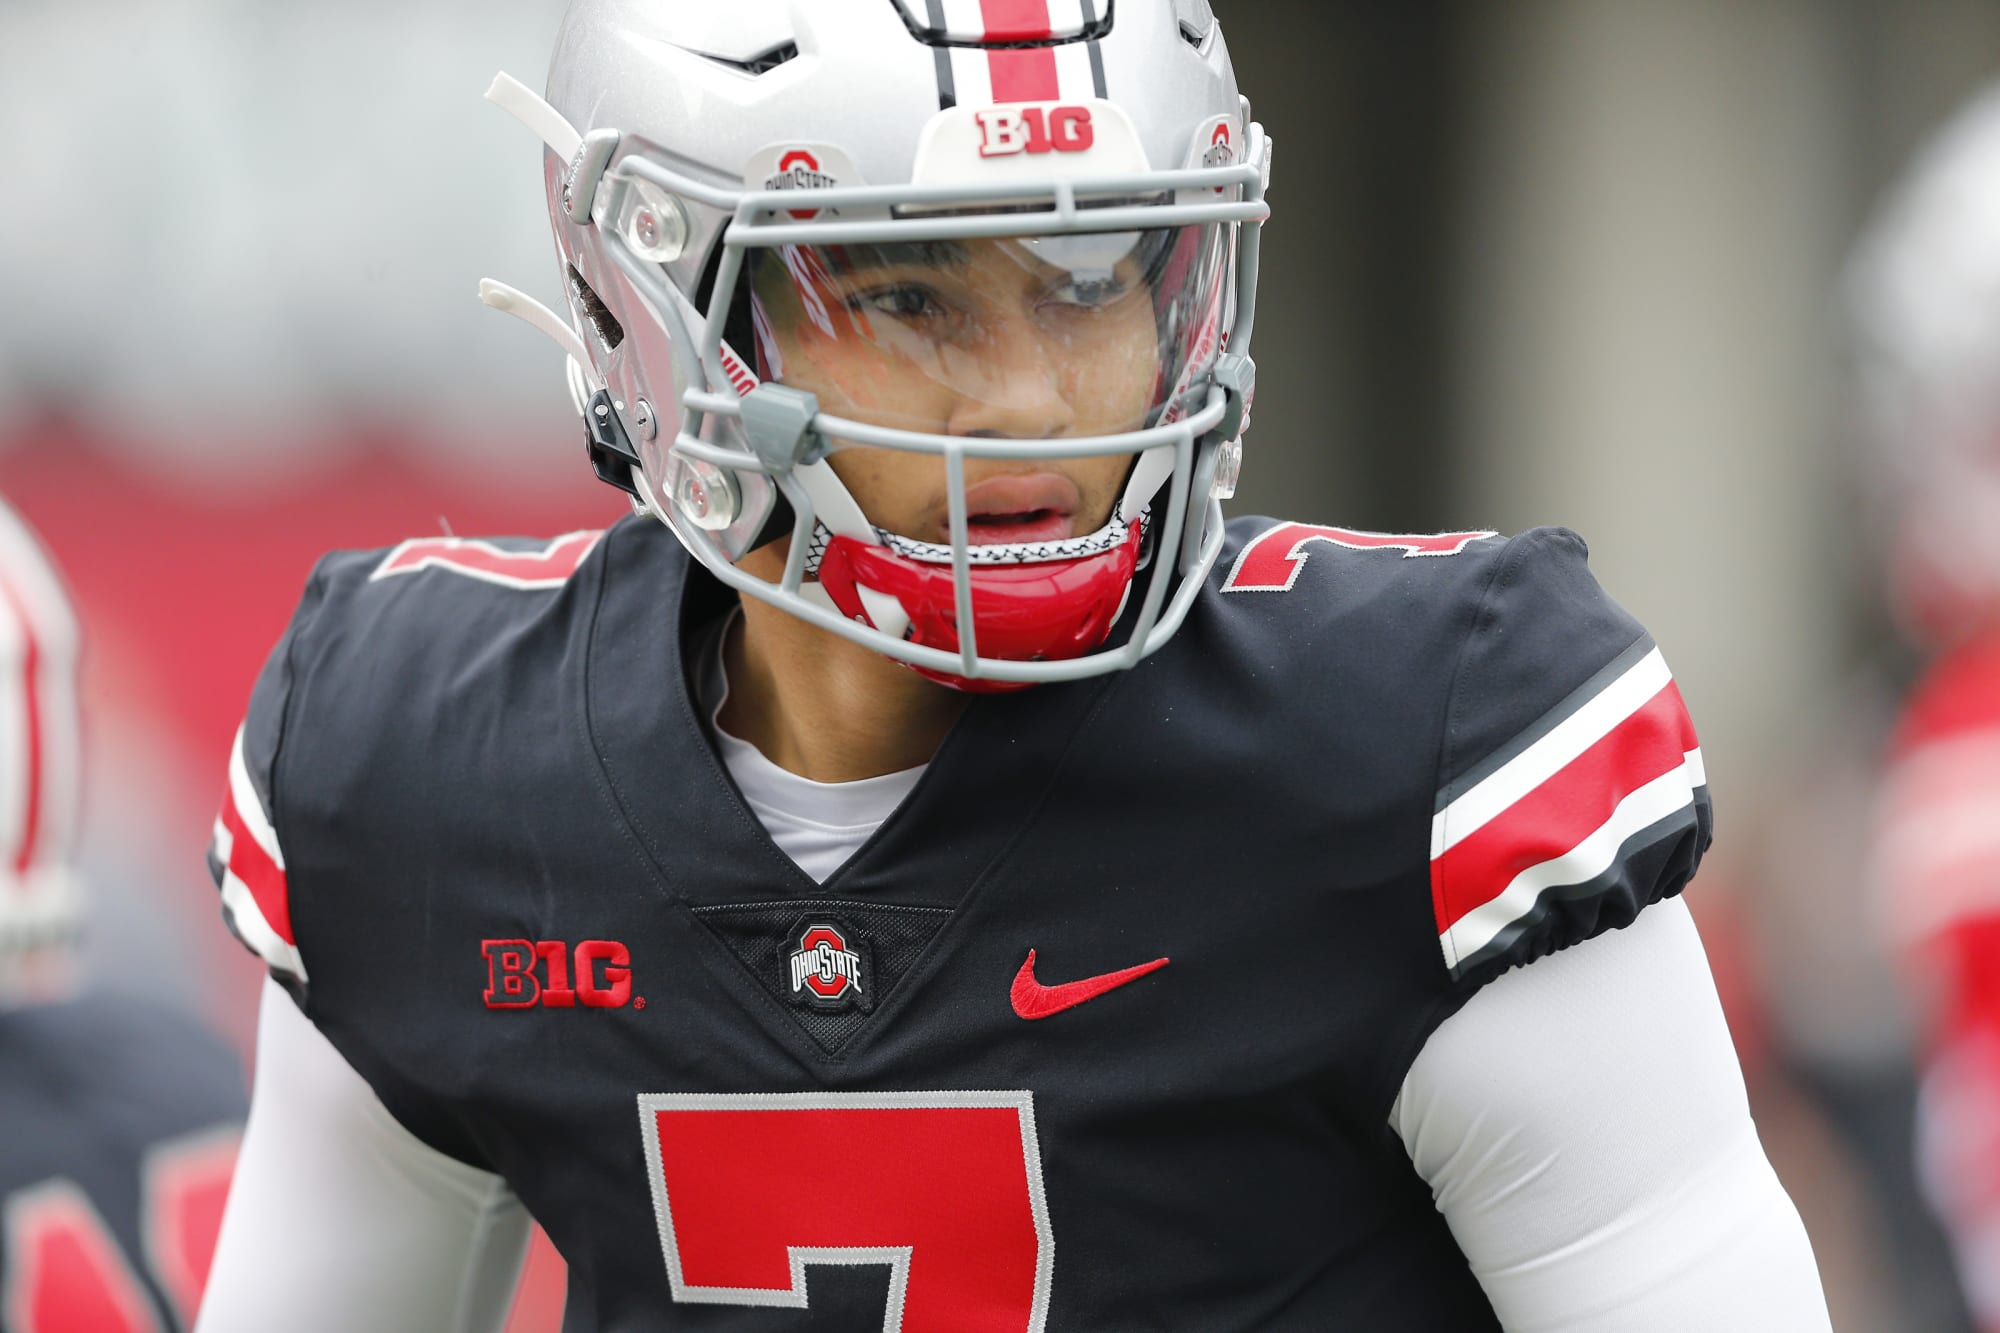 Ohio State football: CJ Stroud makes statement to win Buckeyes starting QB job